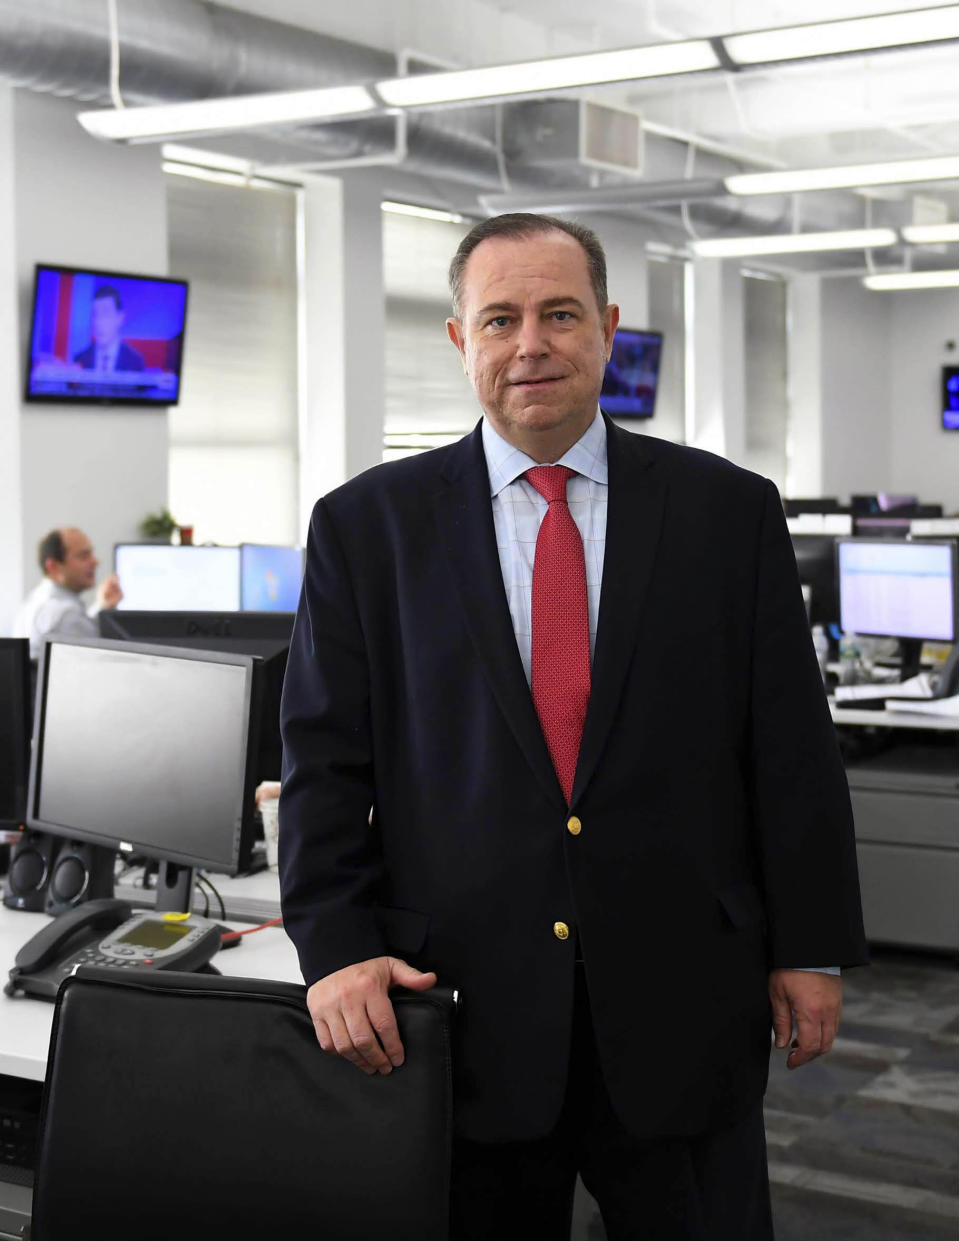 This 2018 photo shows Chris Ruddy, CEO of Newsmax. The network's rise in popularity has been astonishingly swift and could indicate the first serious threat to Fox News Channel's iron grip on conservative viewers in two decades. (Newsmax via AP)